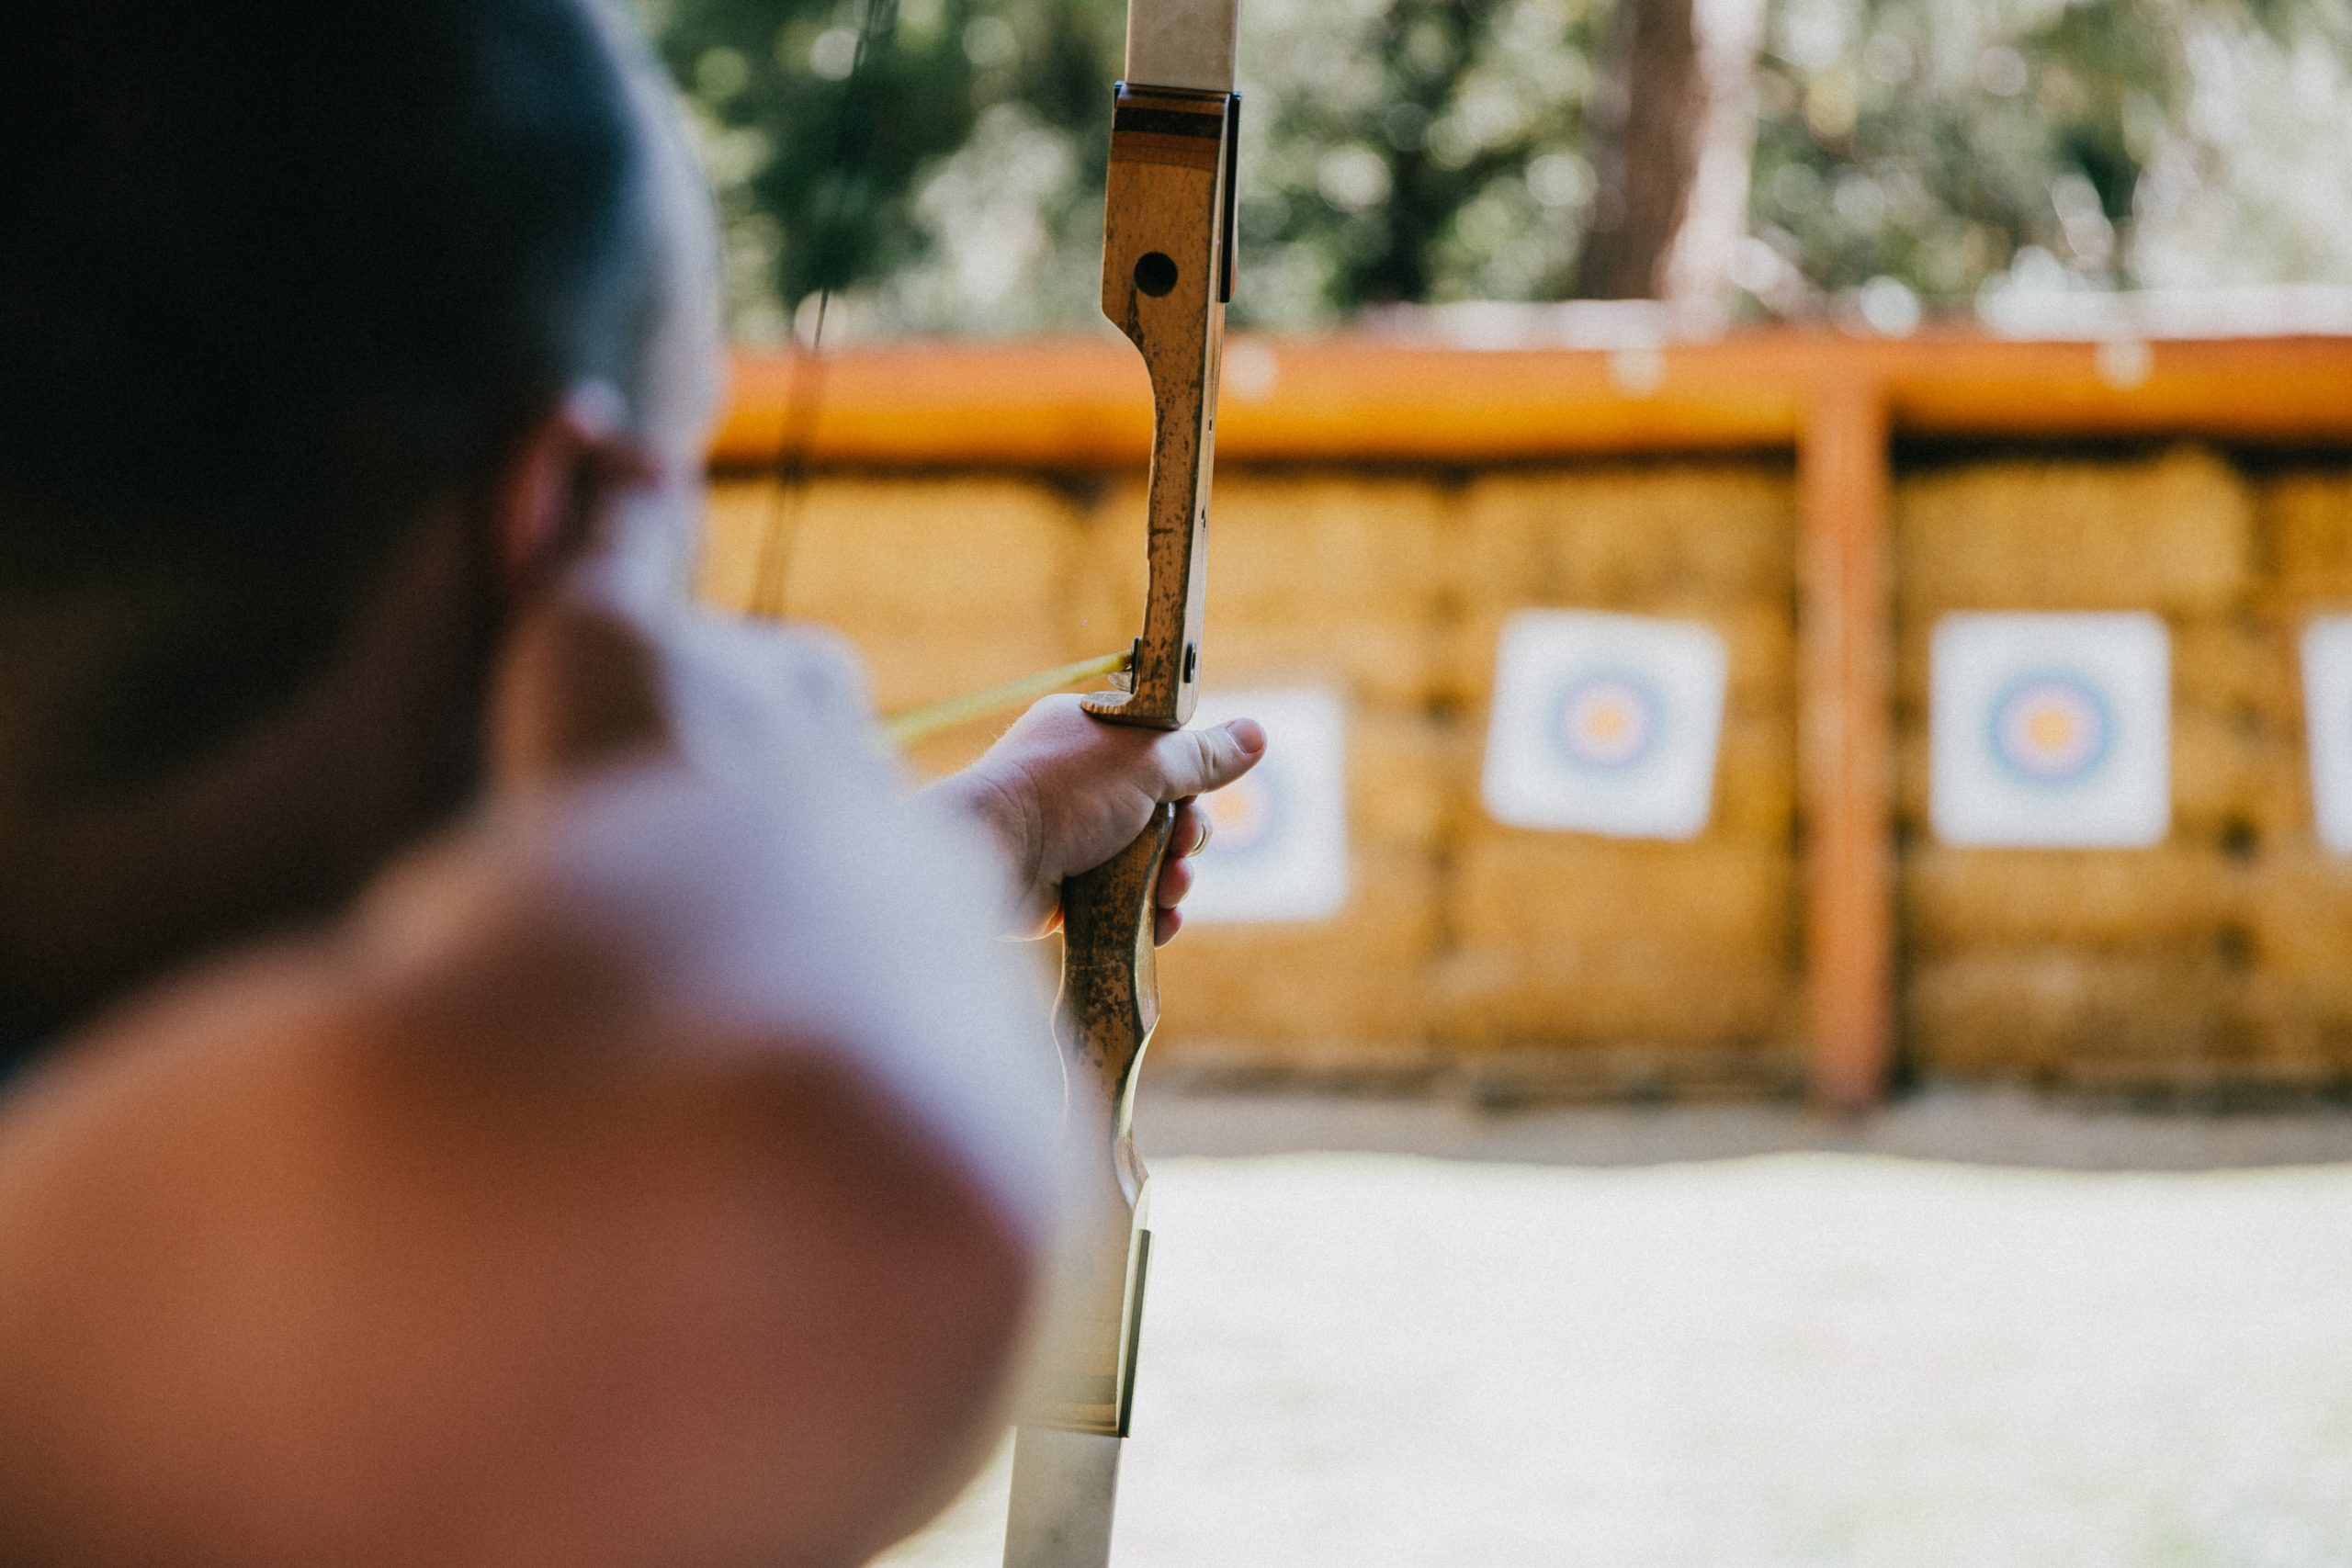 A close-up of someone shooting an arrow at a target at an archery range.